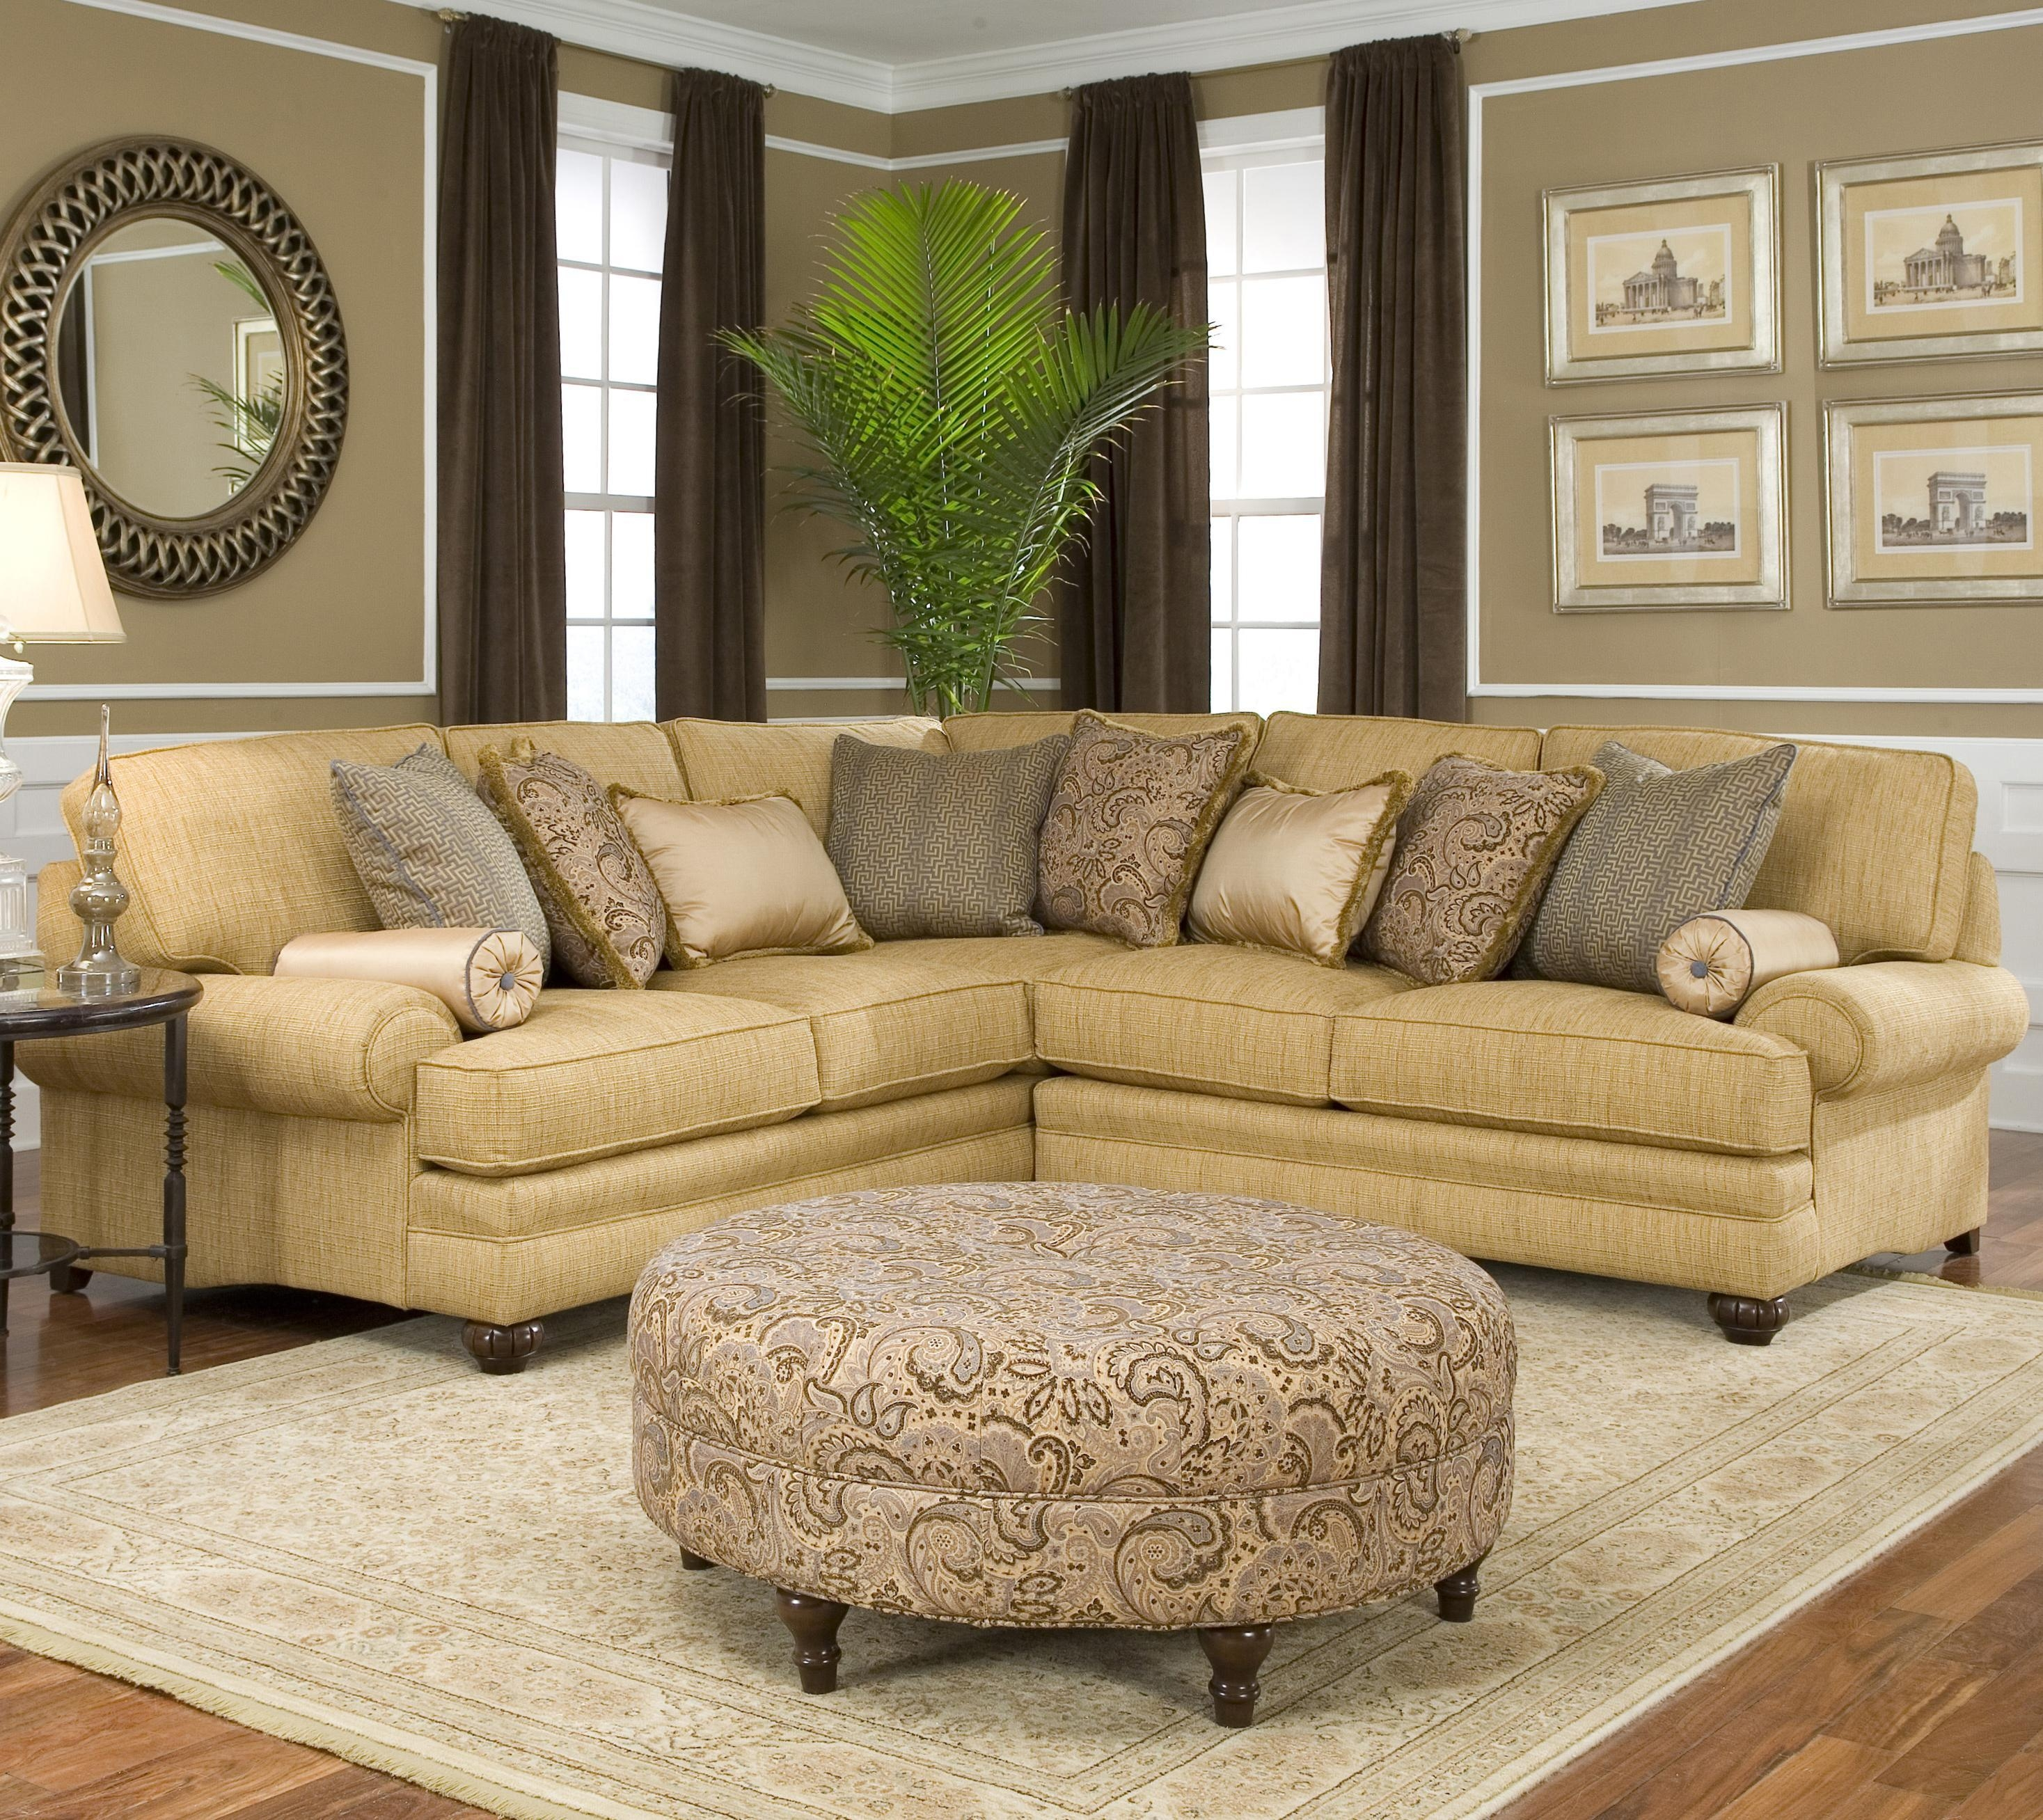 Traditional Styled Corner Sectional Sofasmith Brothers | Wolf For Smith Brothers Sofas (Image 19 of 20)